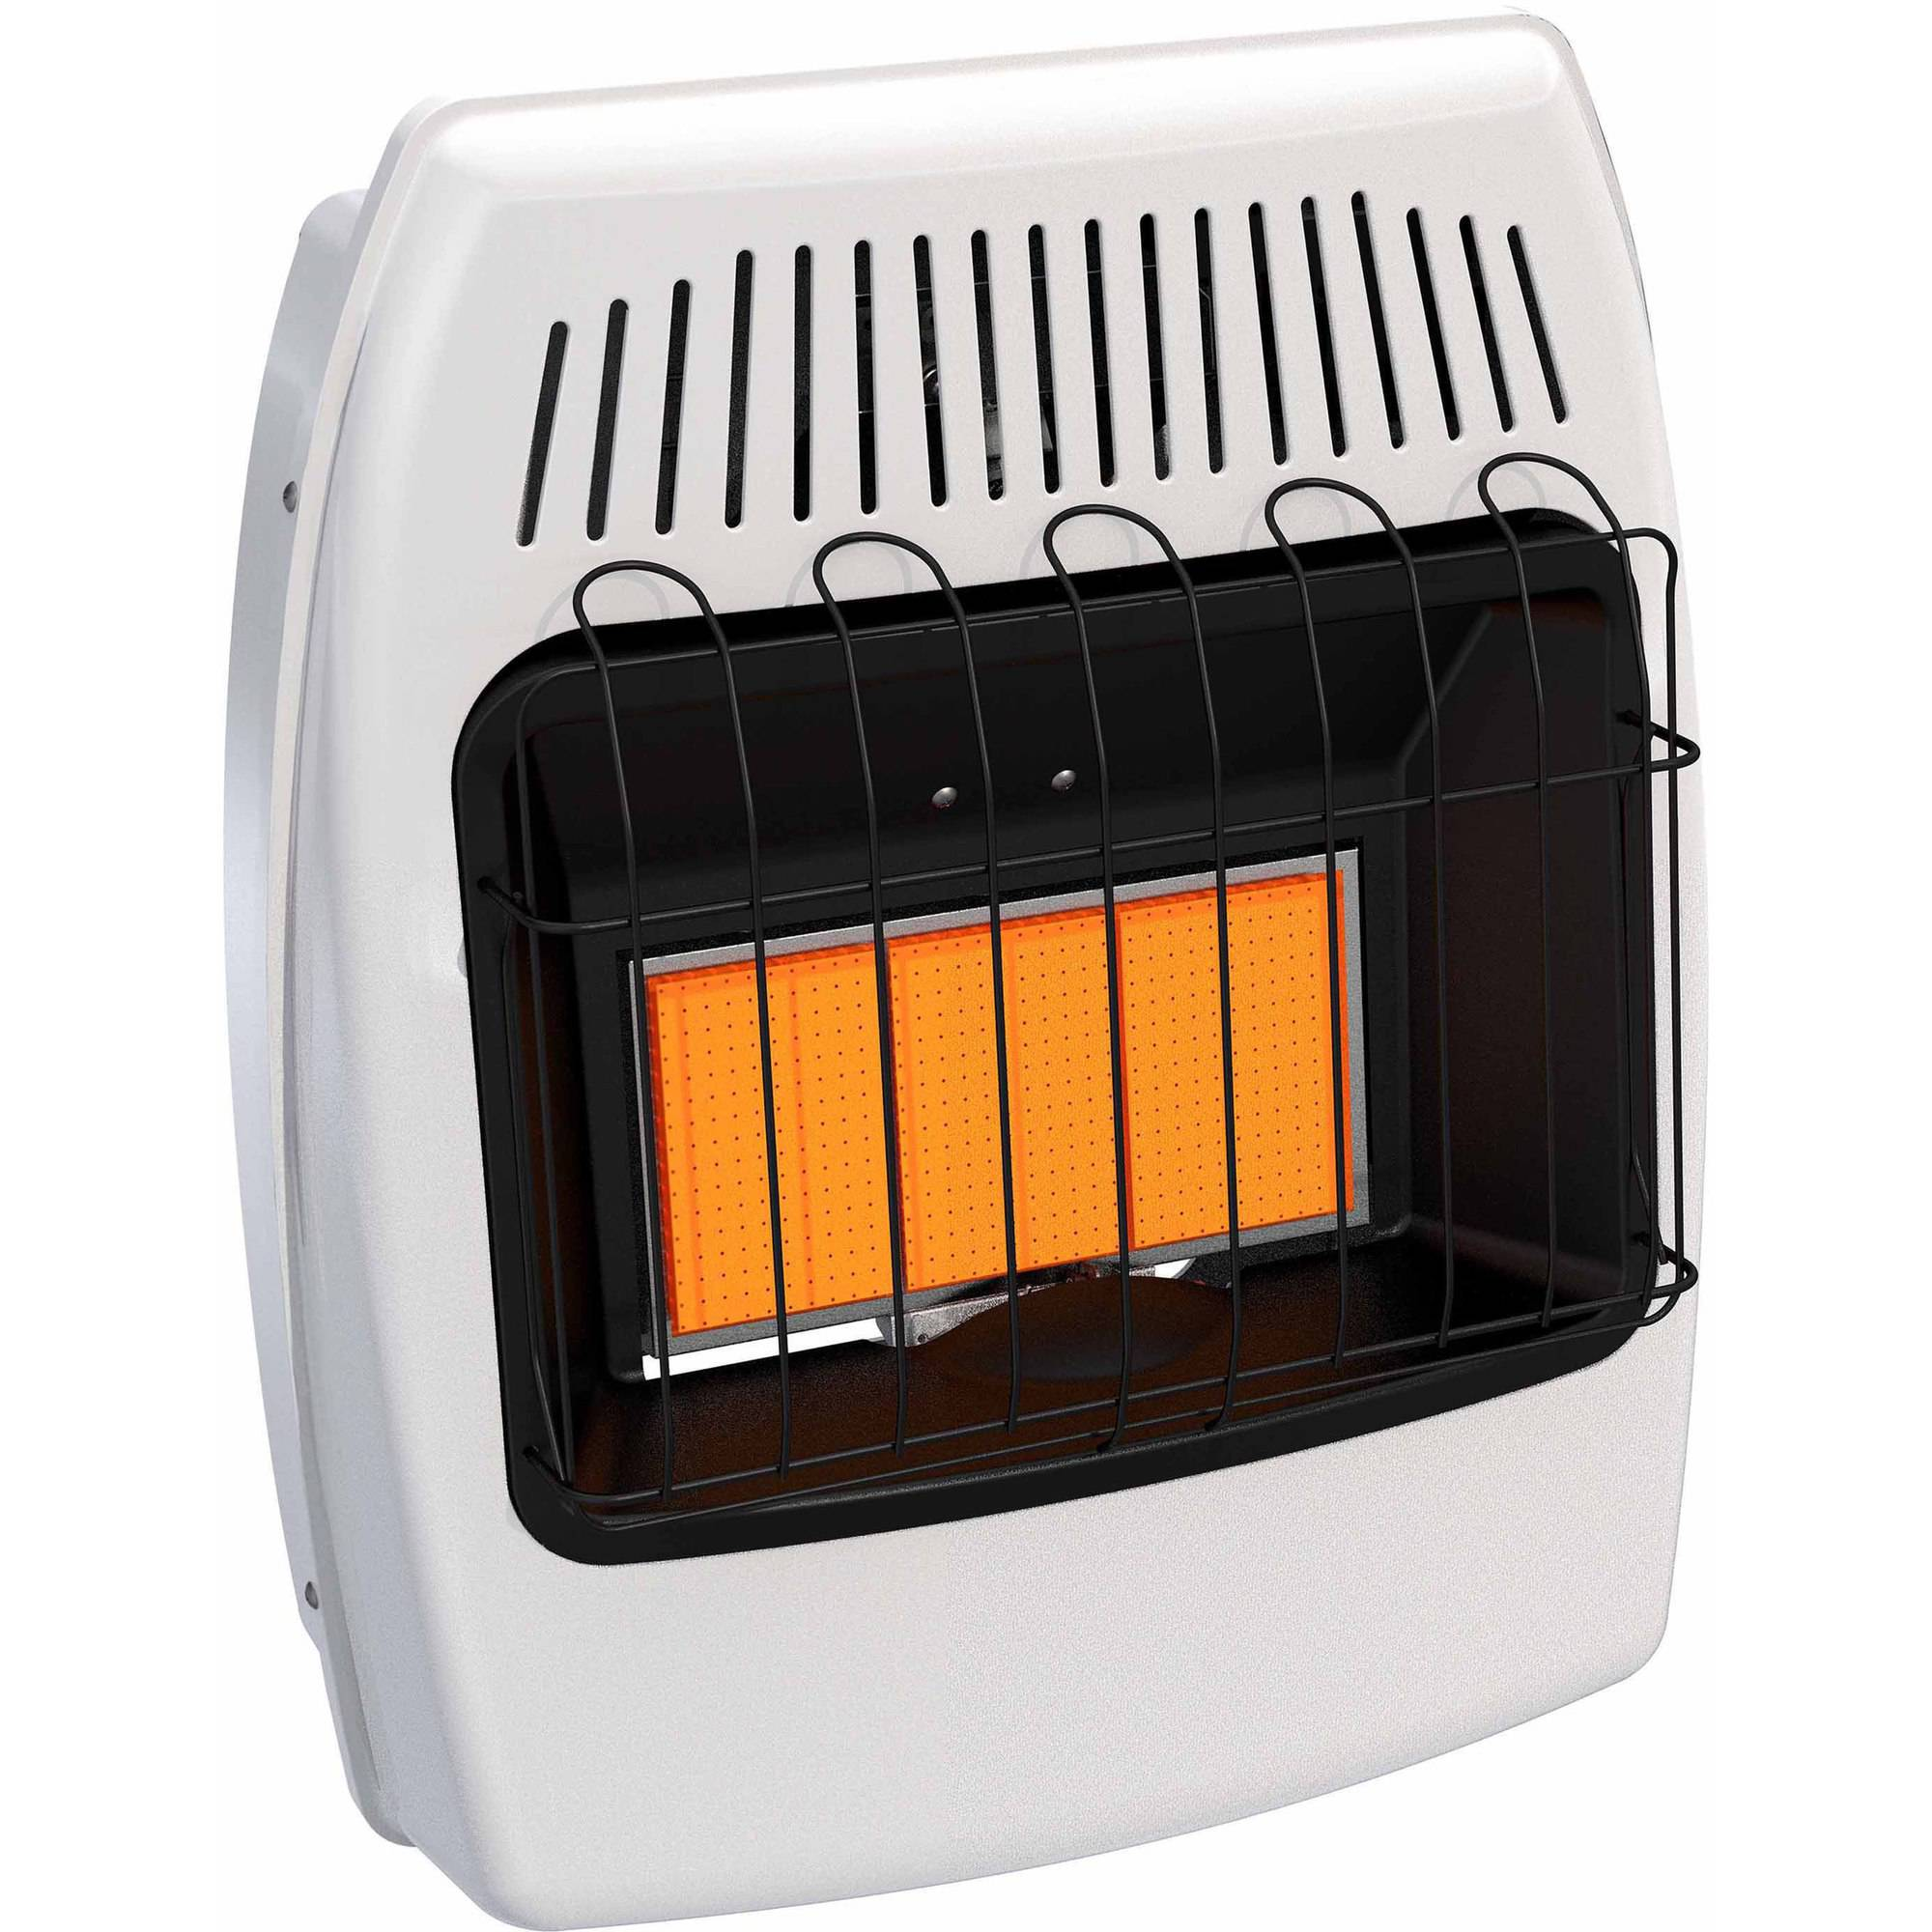 Dyna-Glo IR30PMDG-1 30,000 BTU Infrared Propane Gas Vent Free Wall Heater